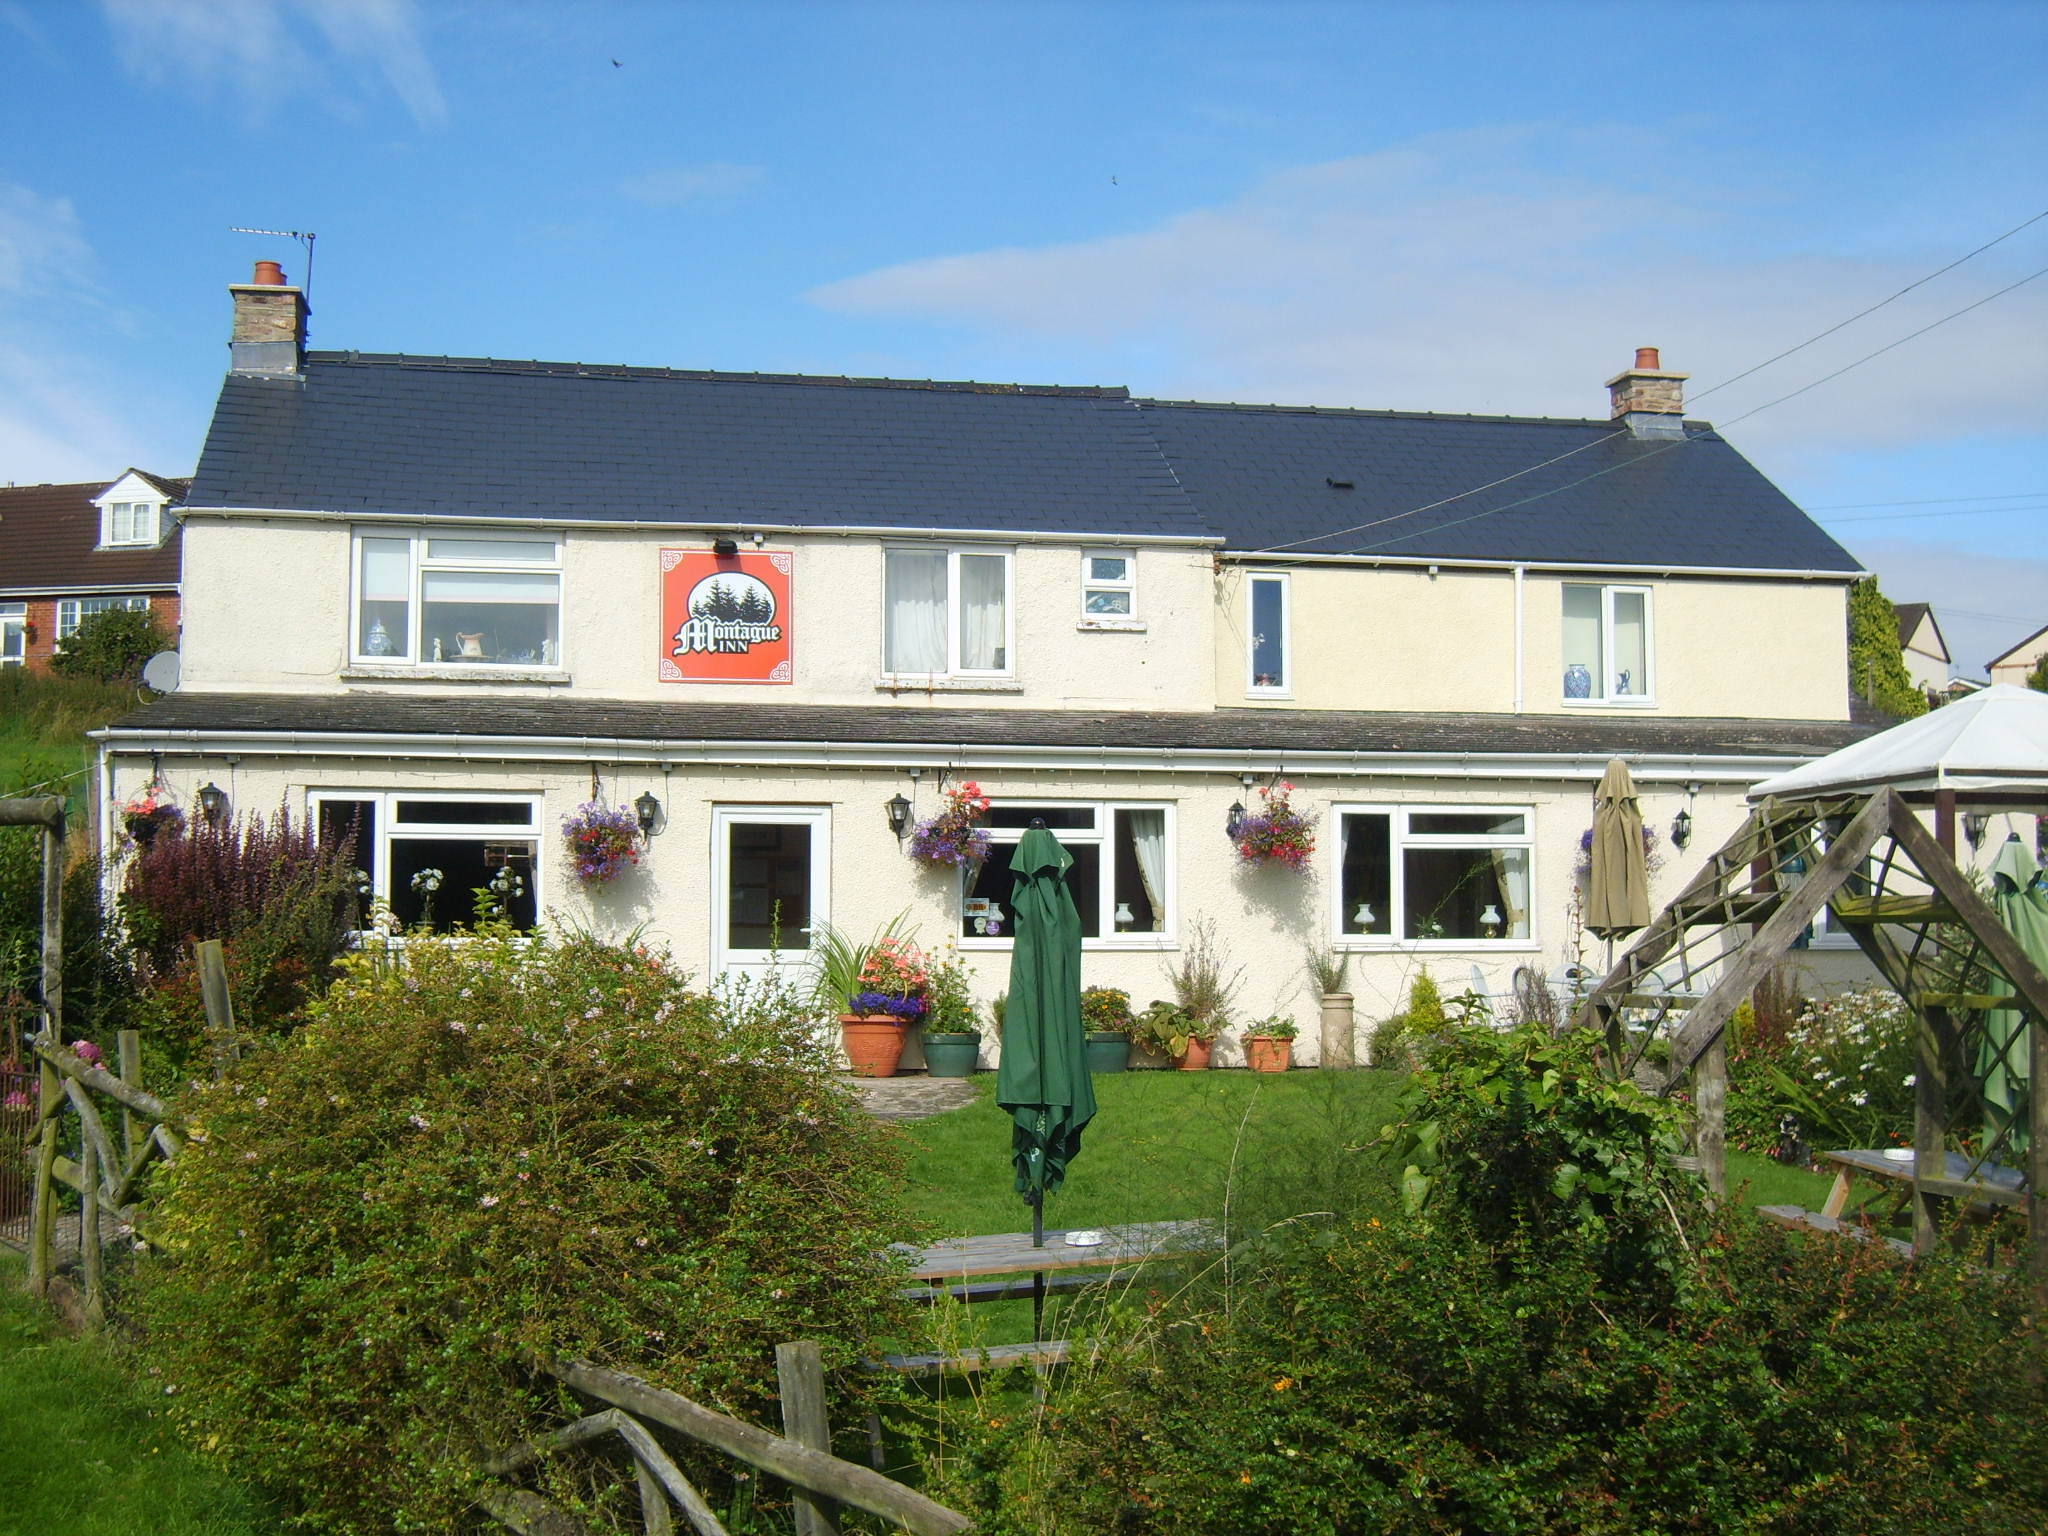 Montague Inn & Restaurant